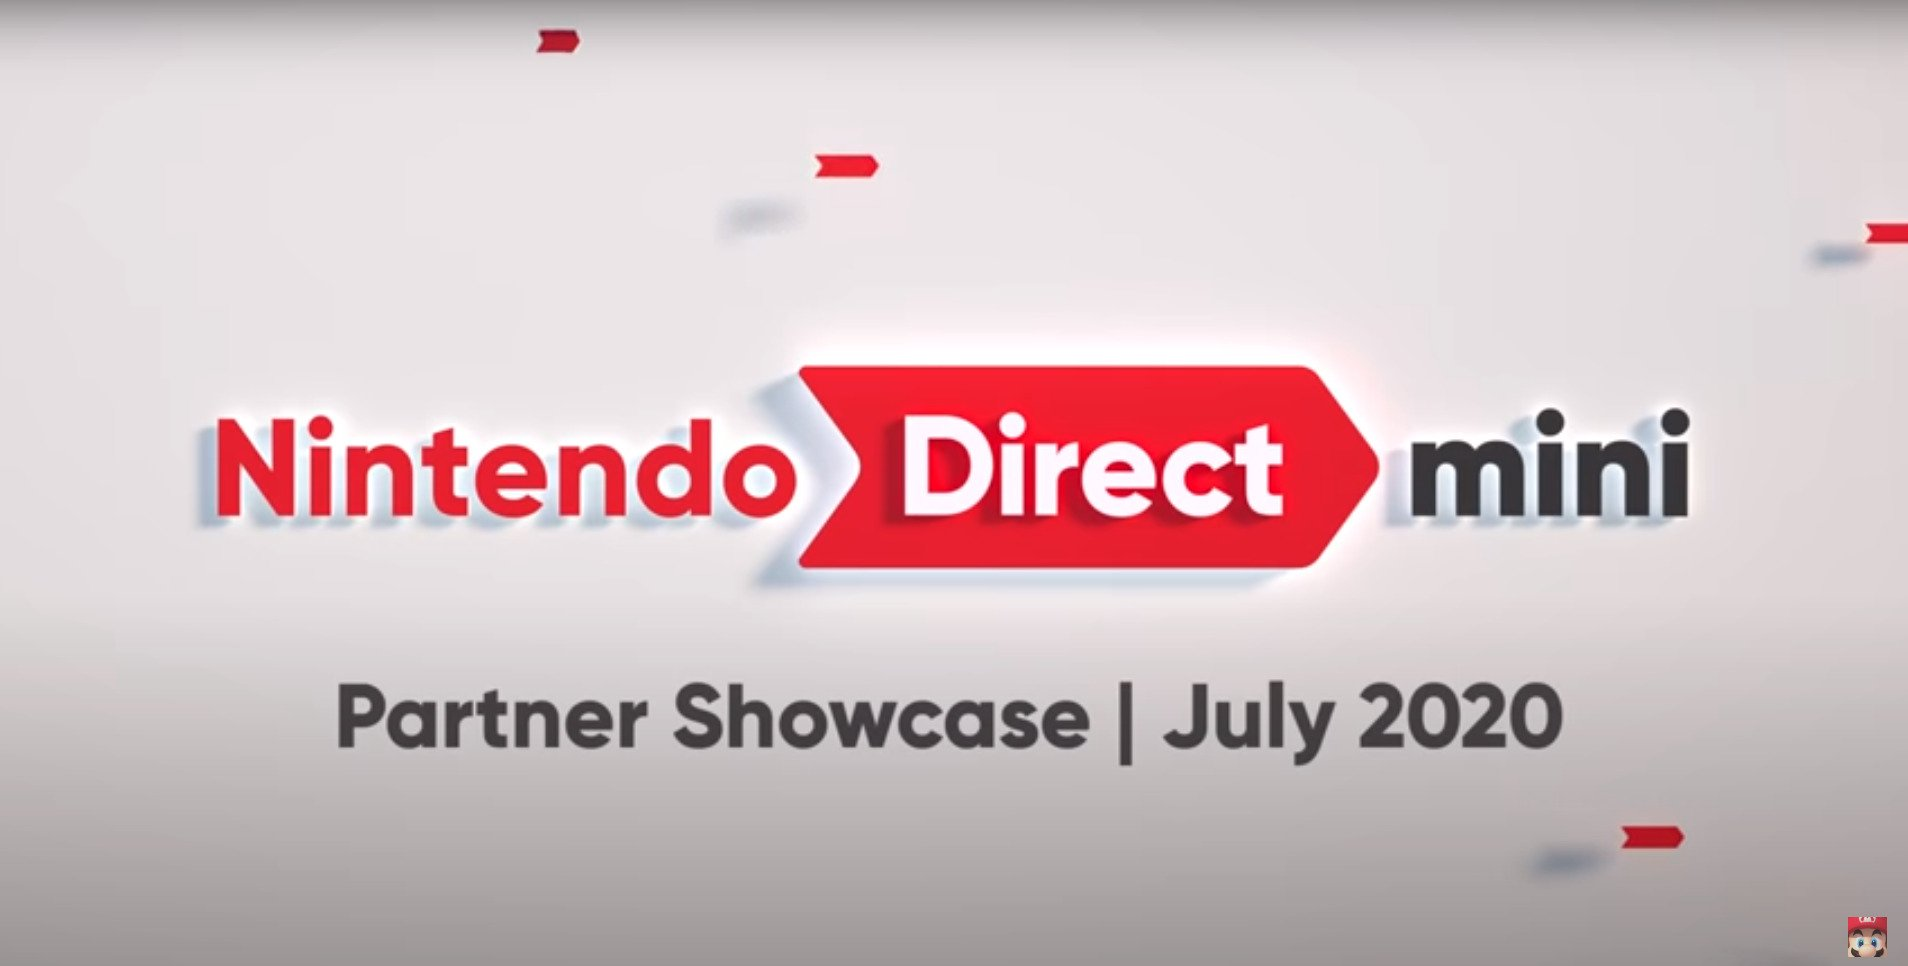 Fans Respond Unhappily To Latest Nintendo Direct Mini Partner Showcase Despite Being Directly Told Not To Expect Much